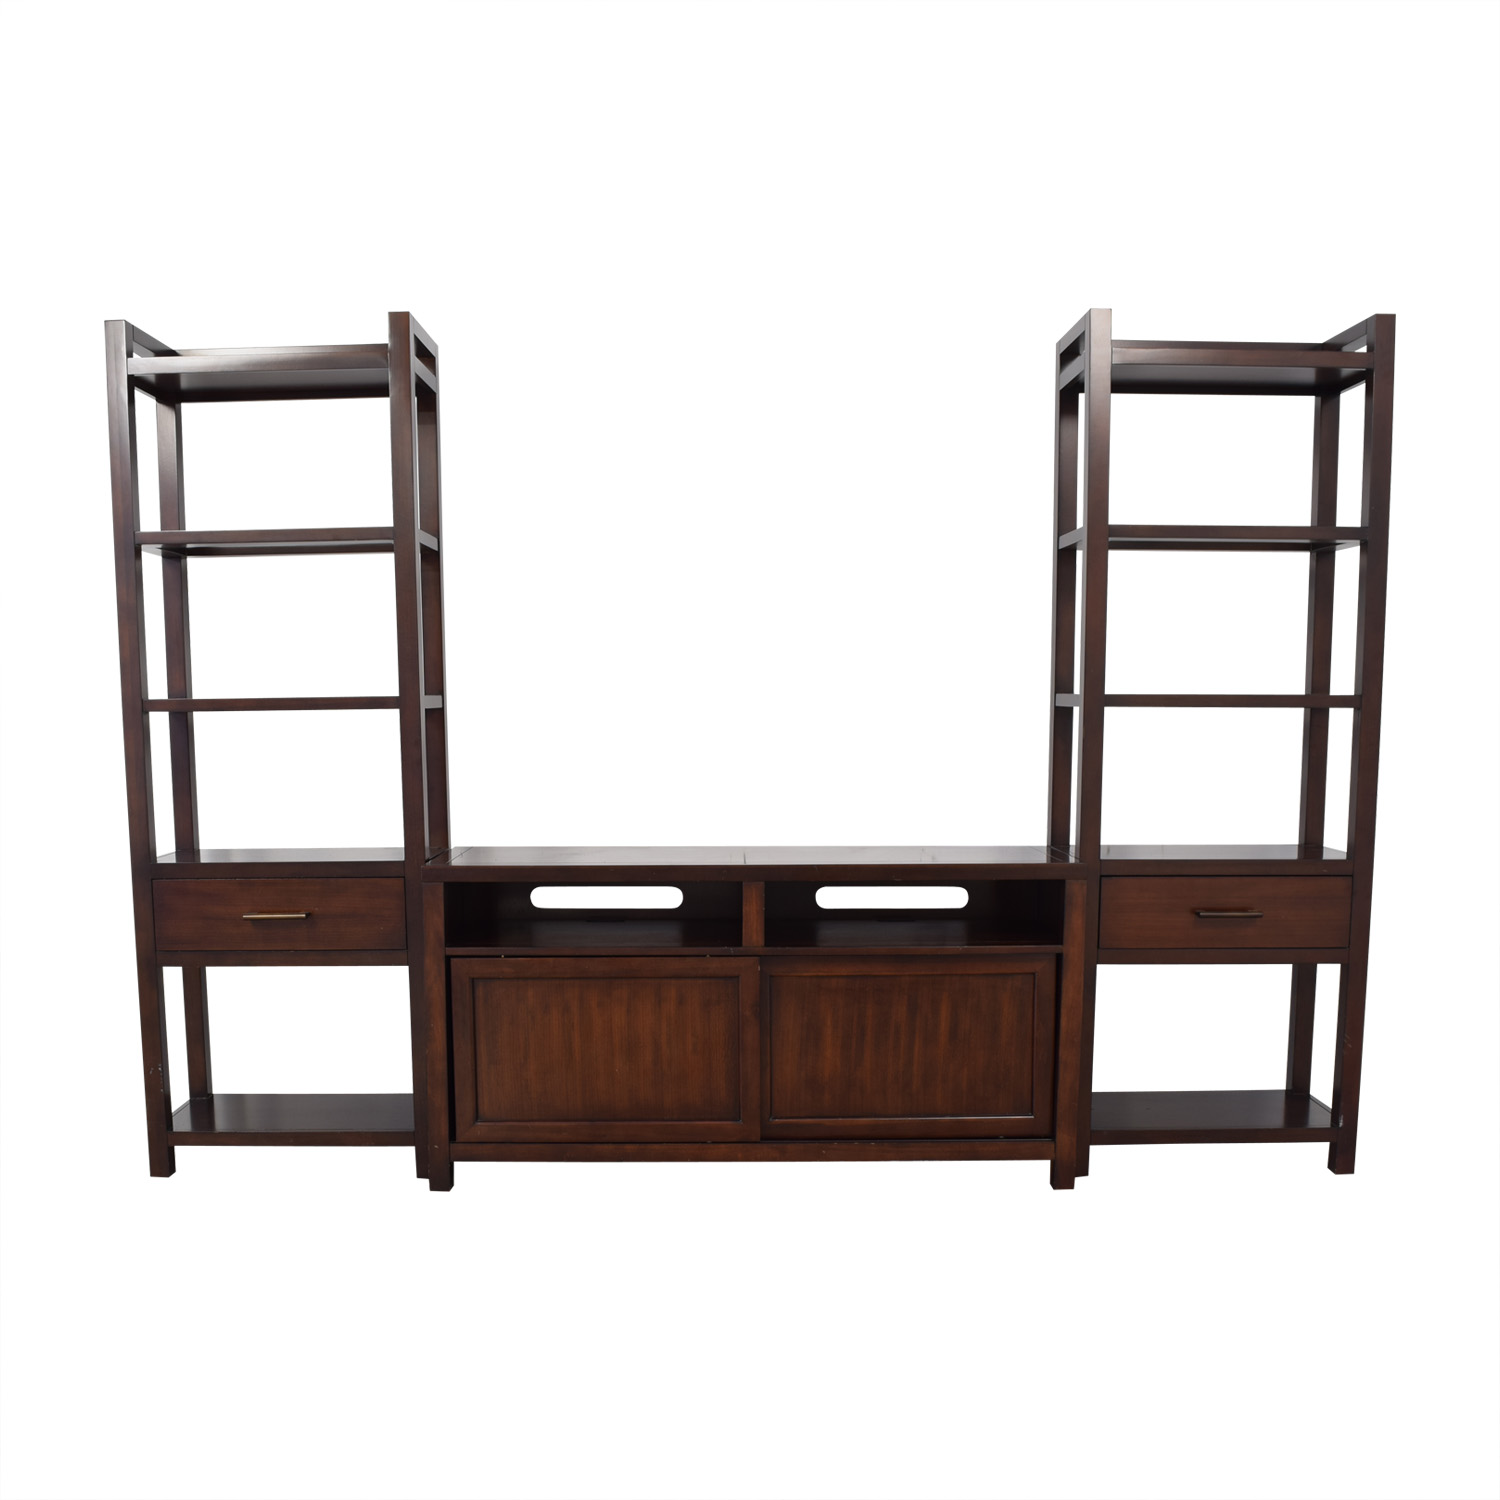 Crate & Barrel Crate & Barrel Media Console with Two Media Towers second hand